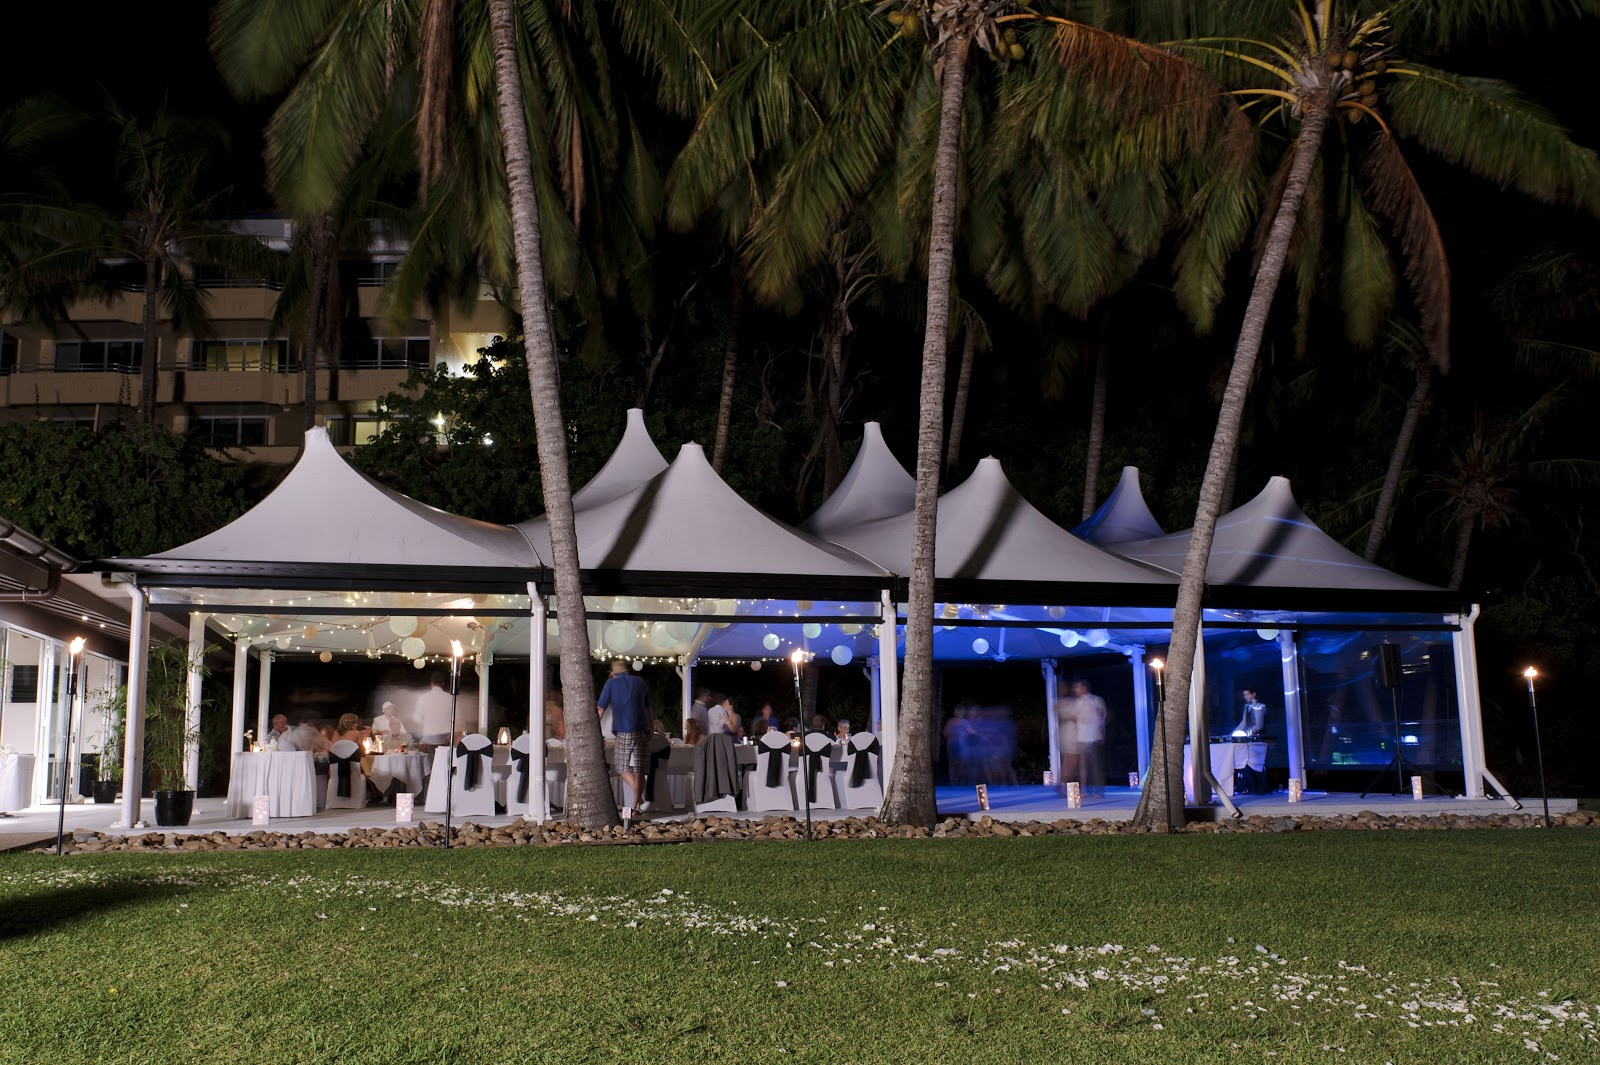 A destination wedding party in a tent.